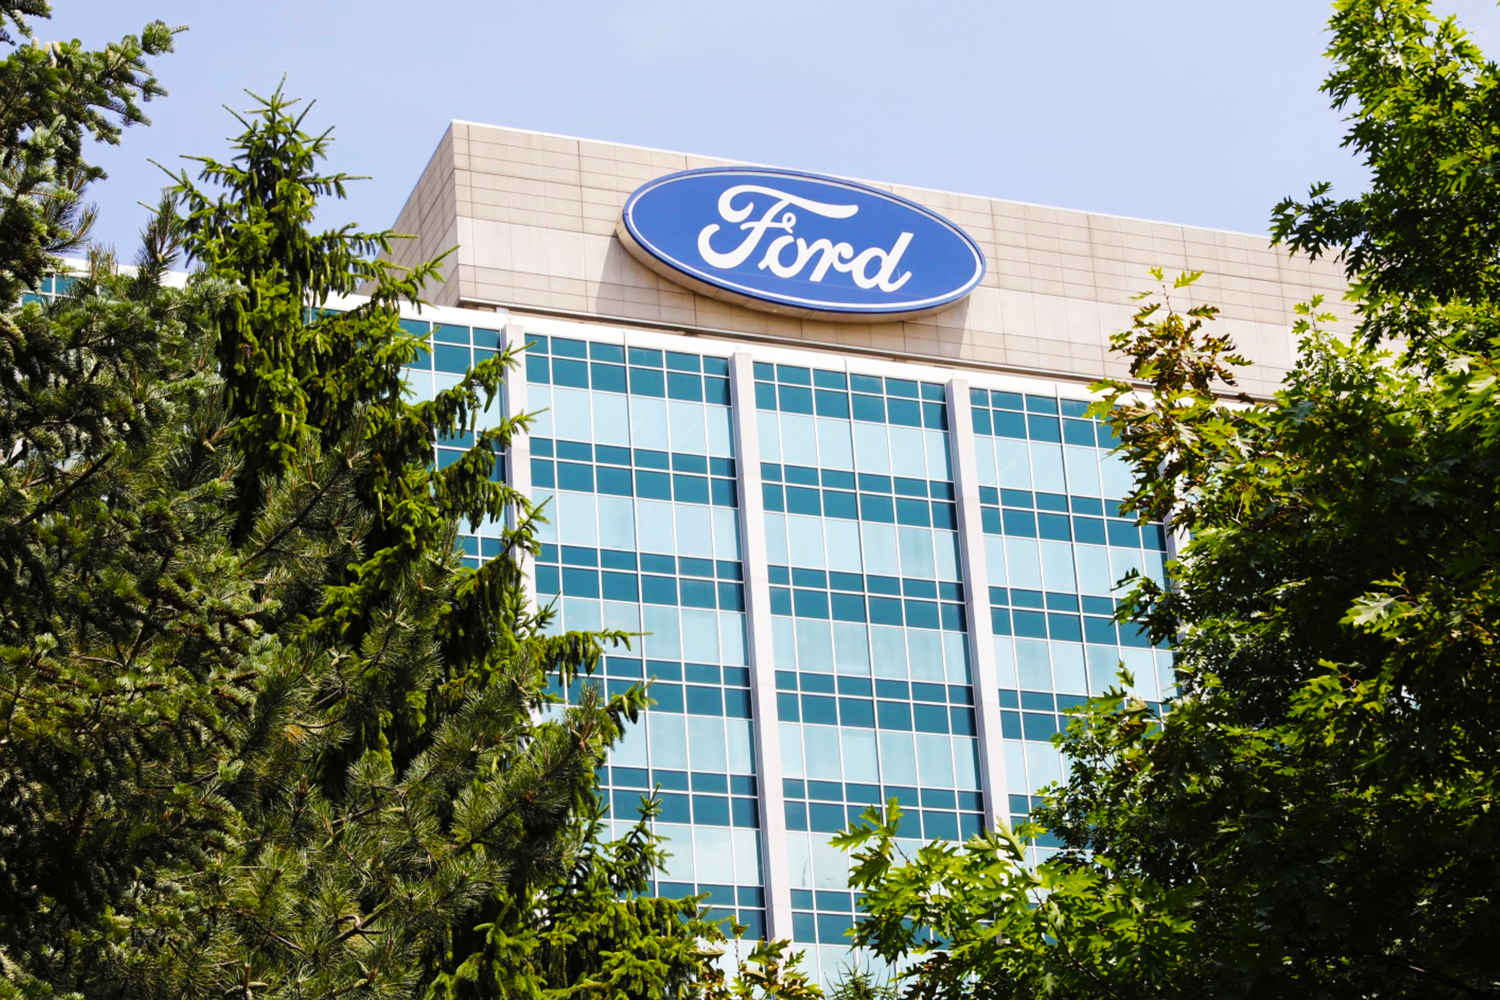 New Ford CEO Jim Farley replaces the automaker's CMO on his first day on job